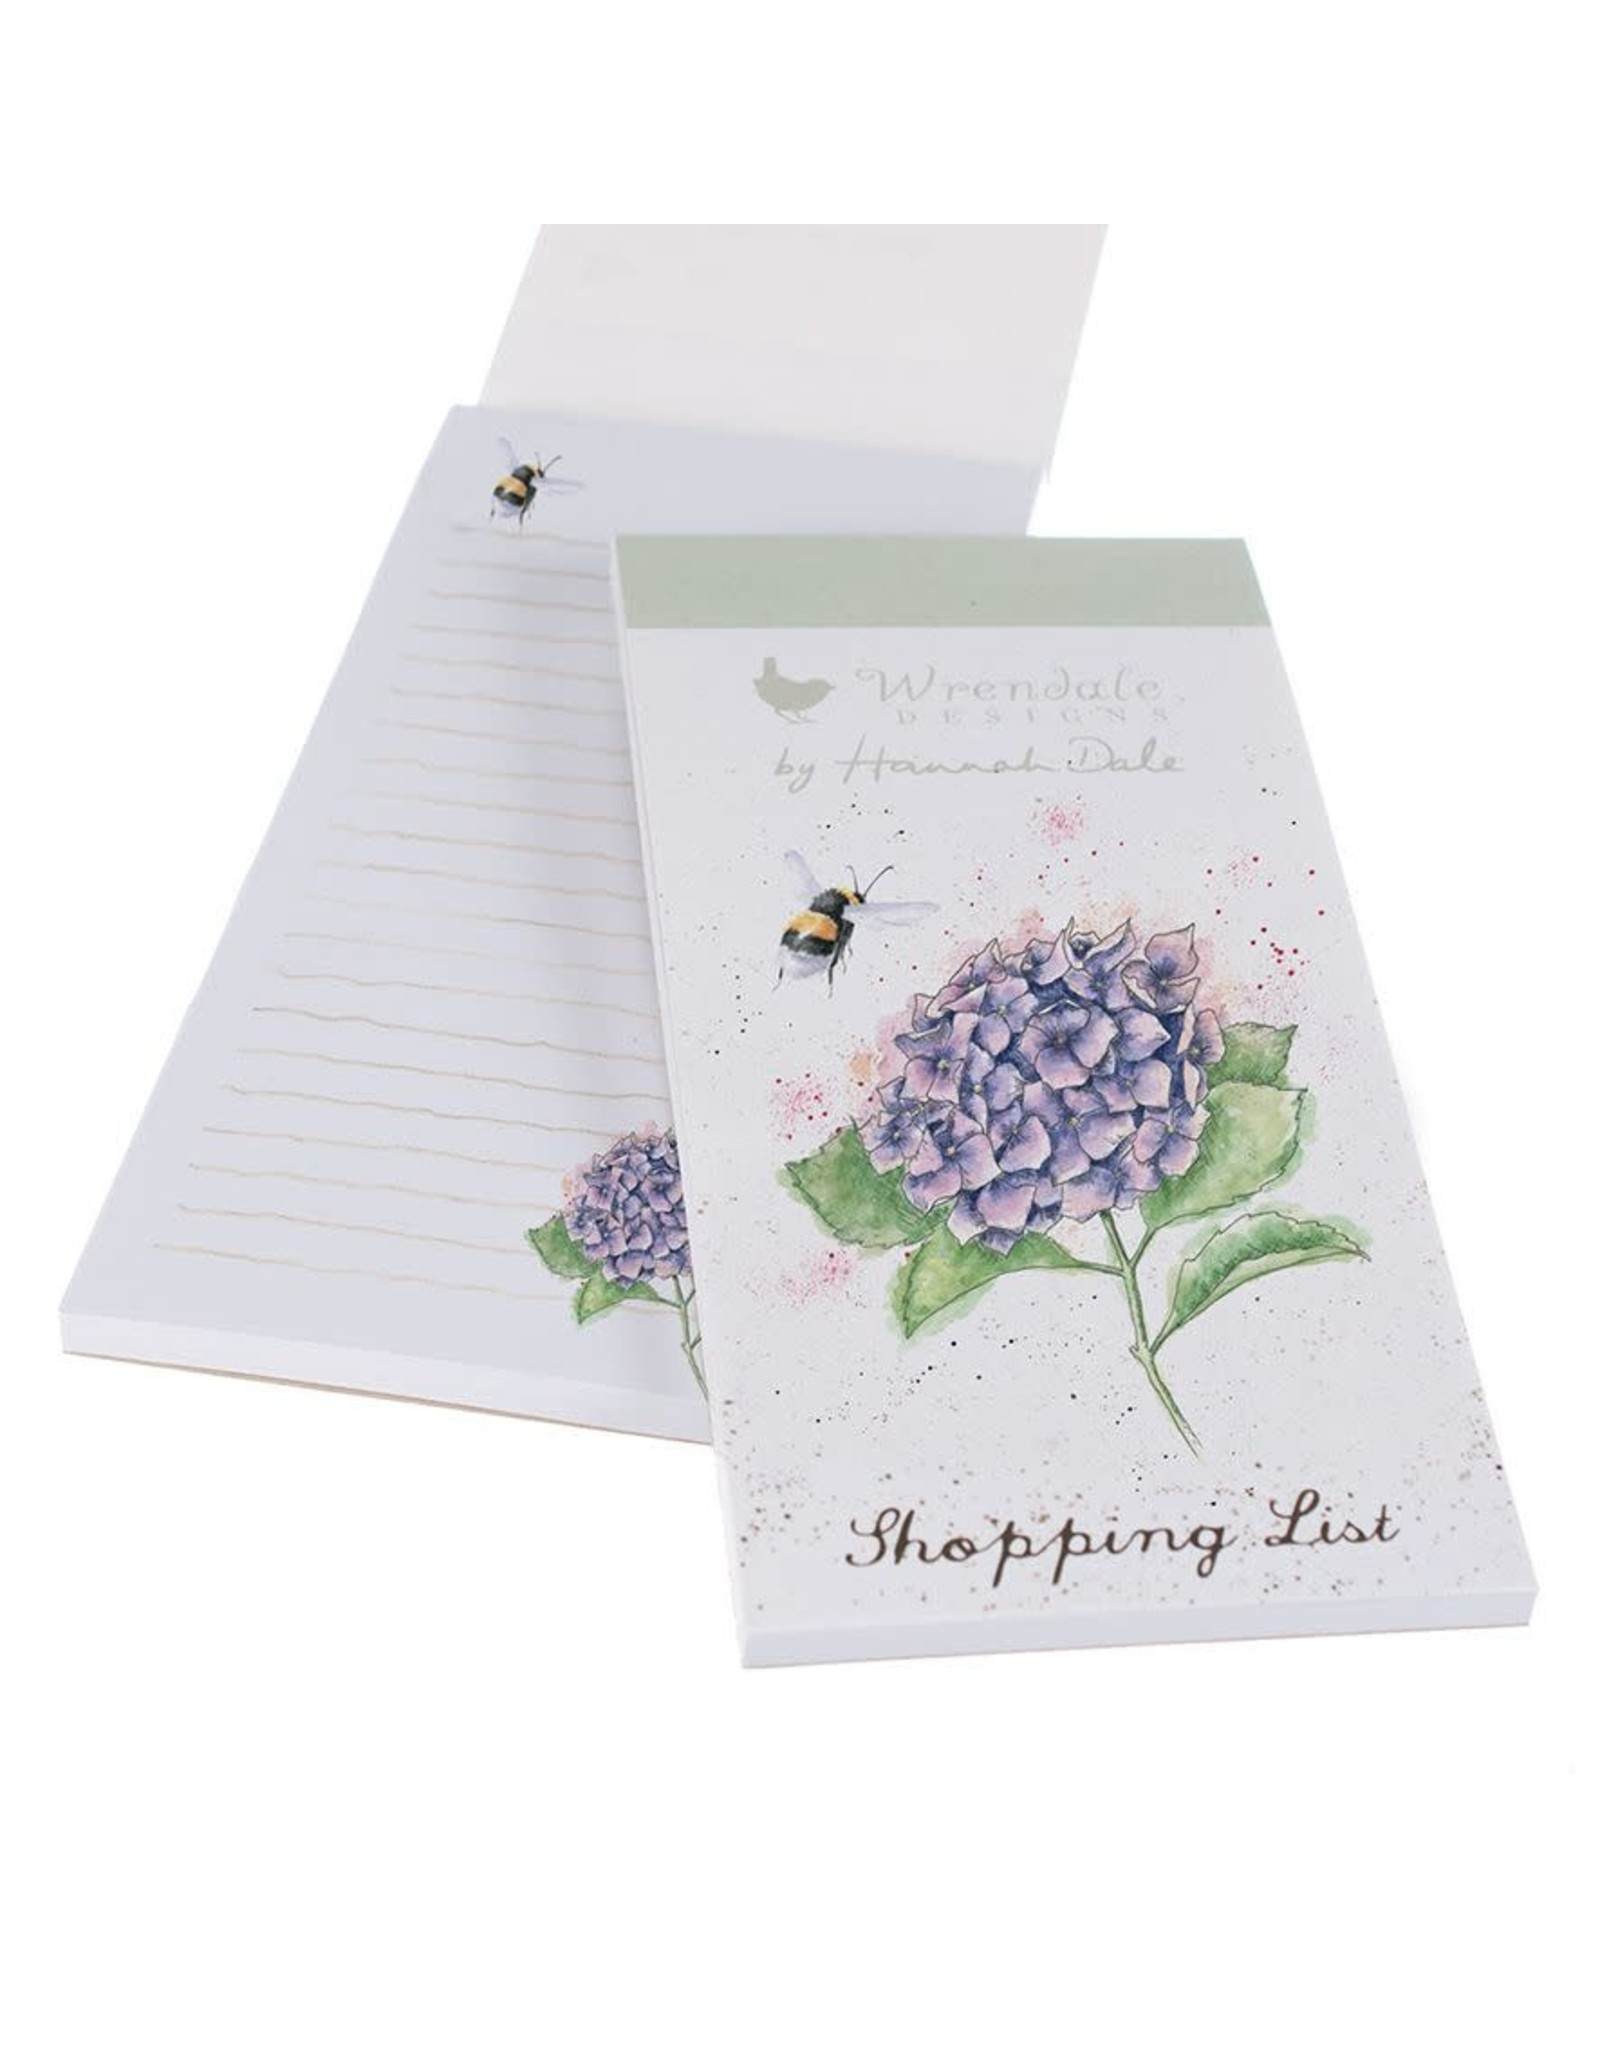 Wrendale Shopping List - Bee and Hydrangea